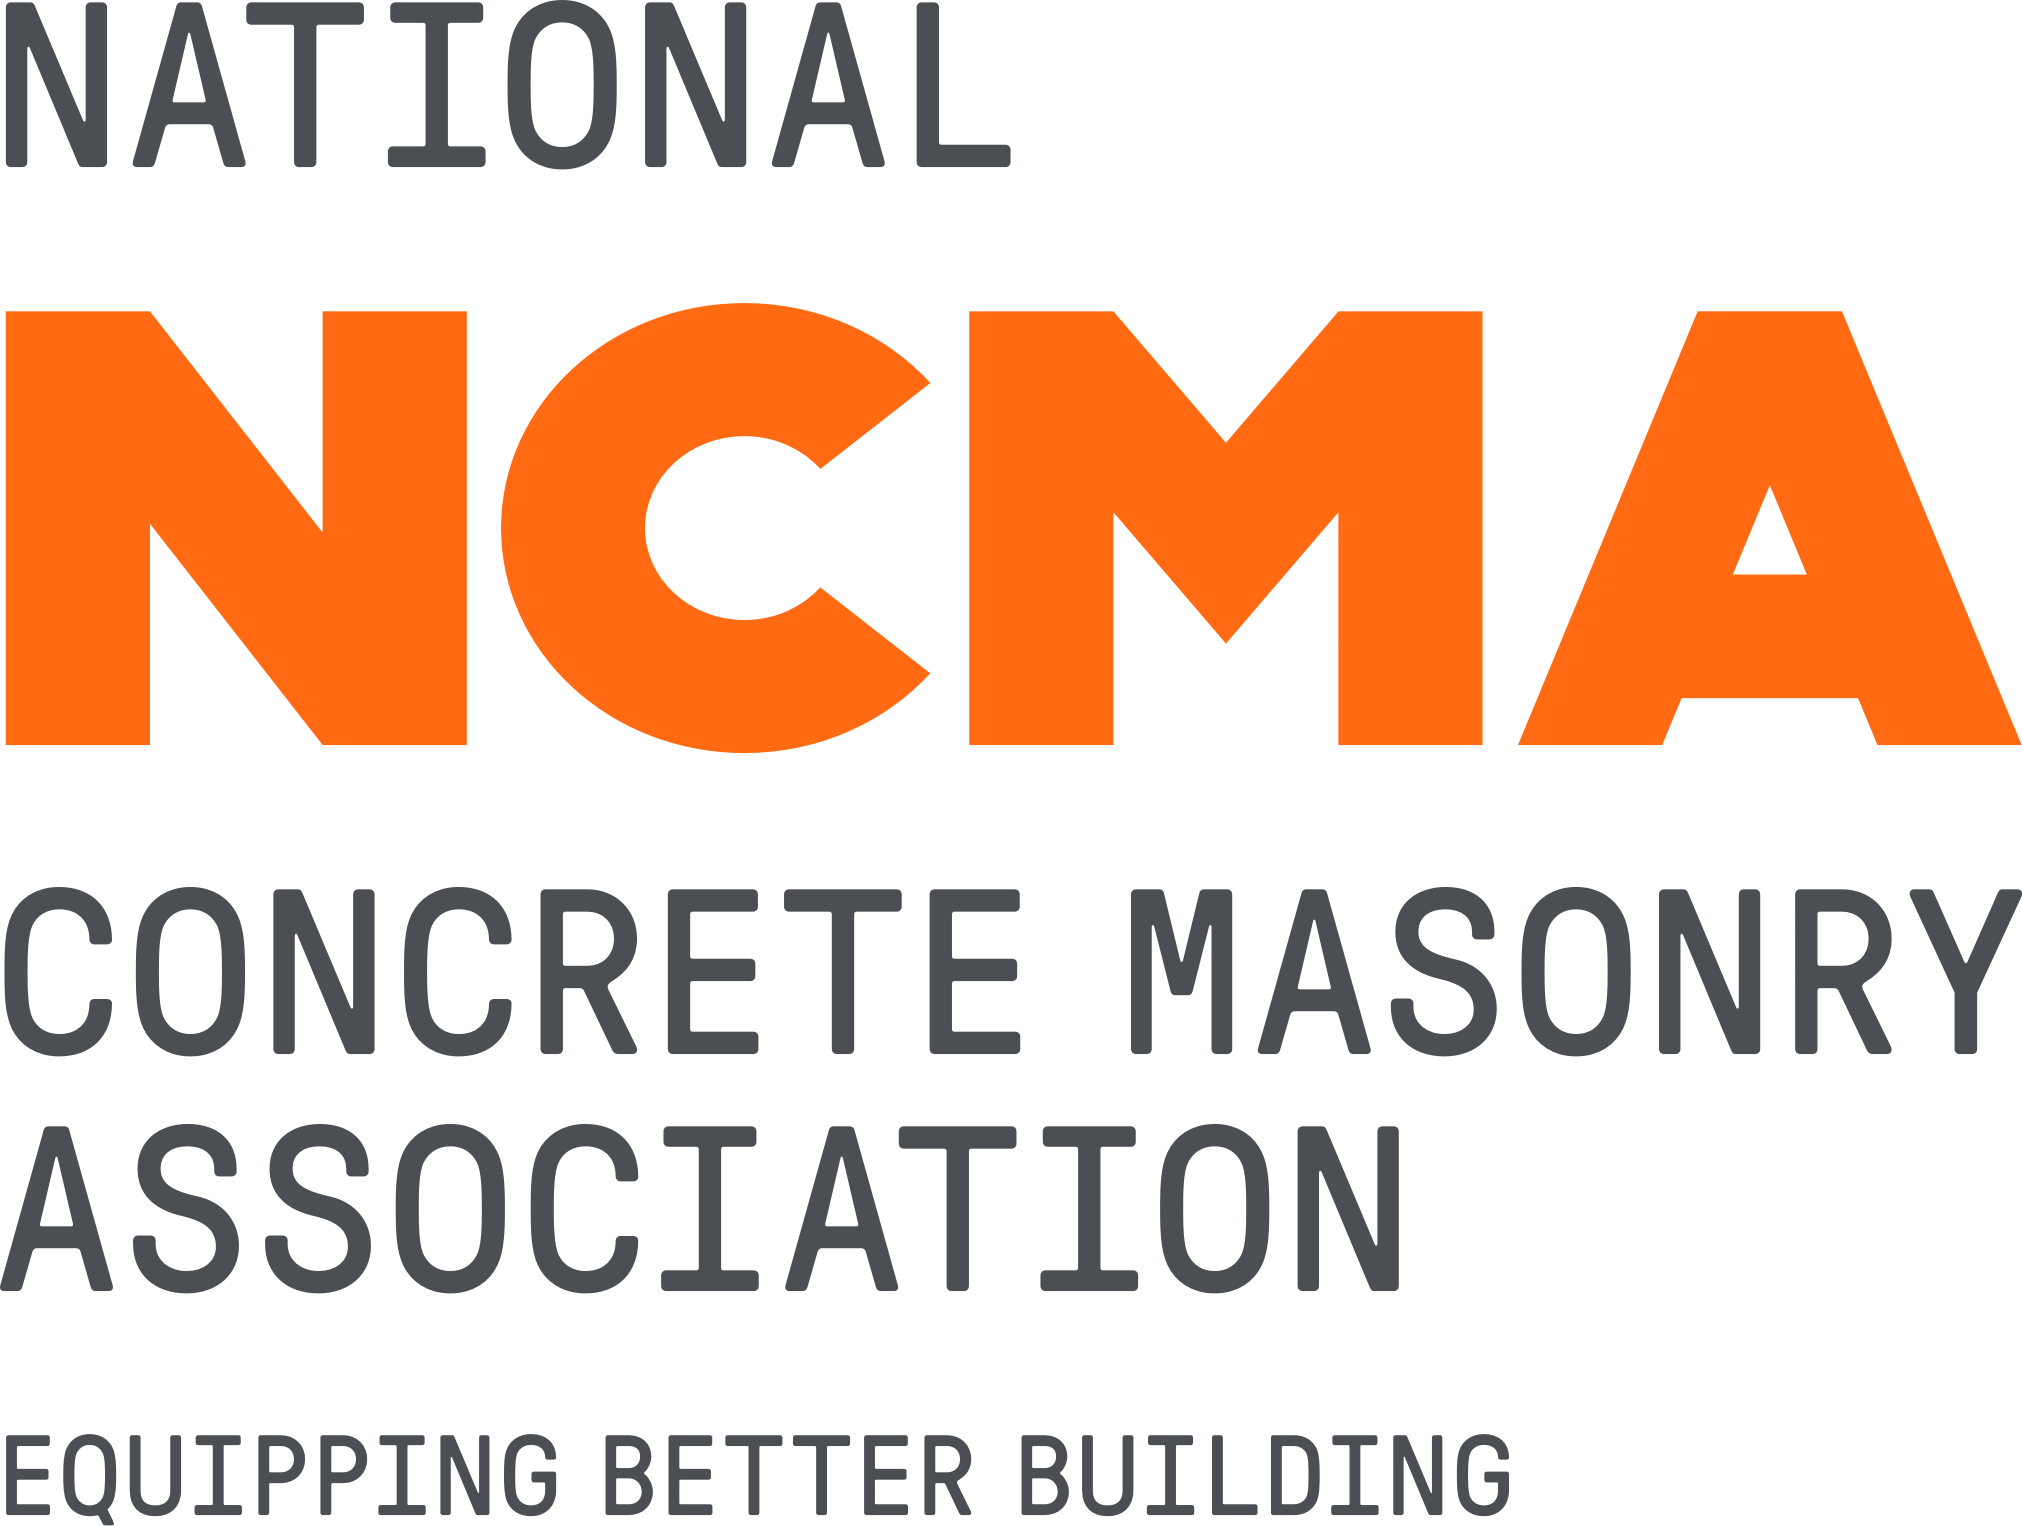 National concrete masonry association - NCMA